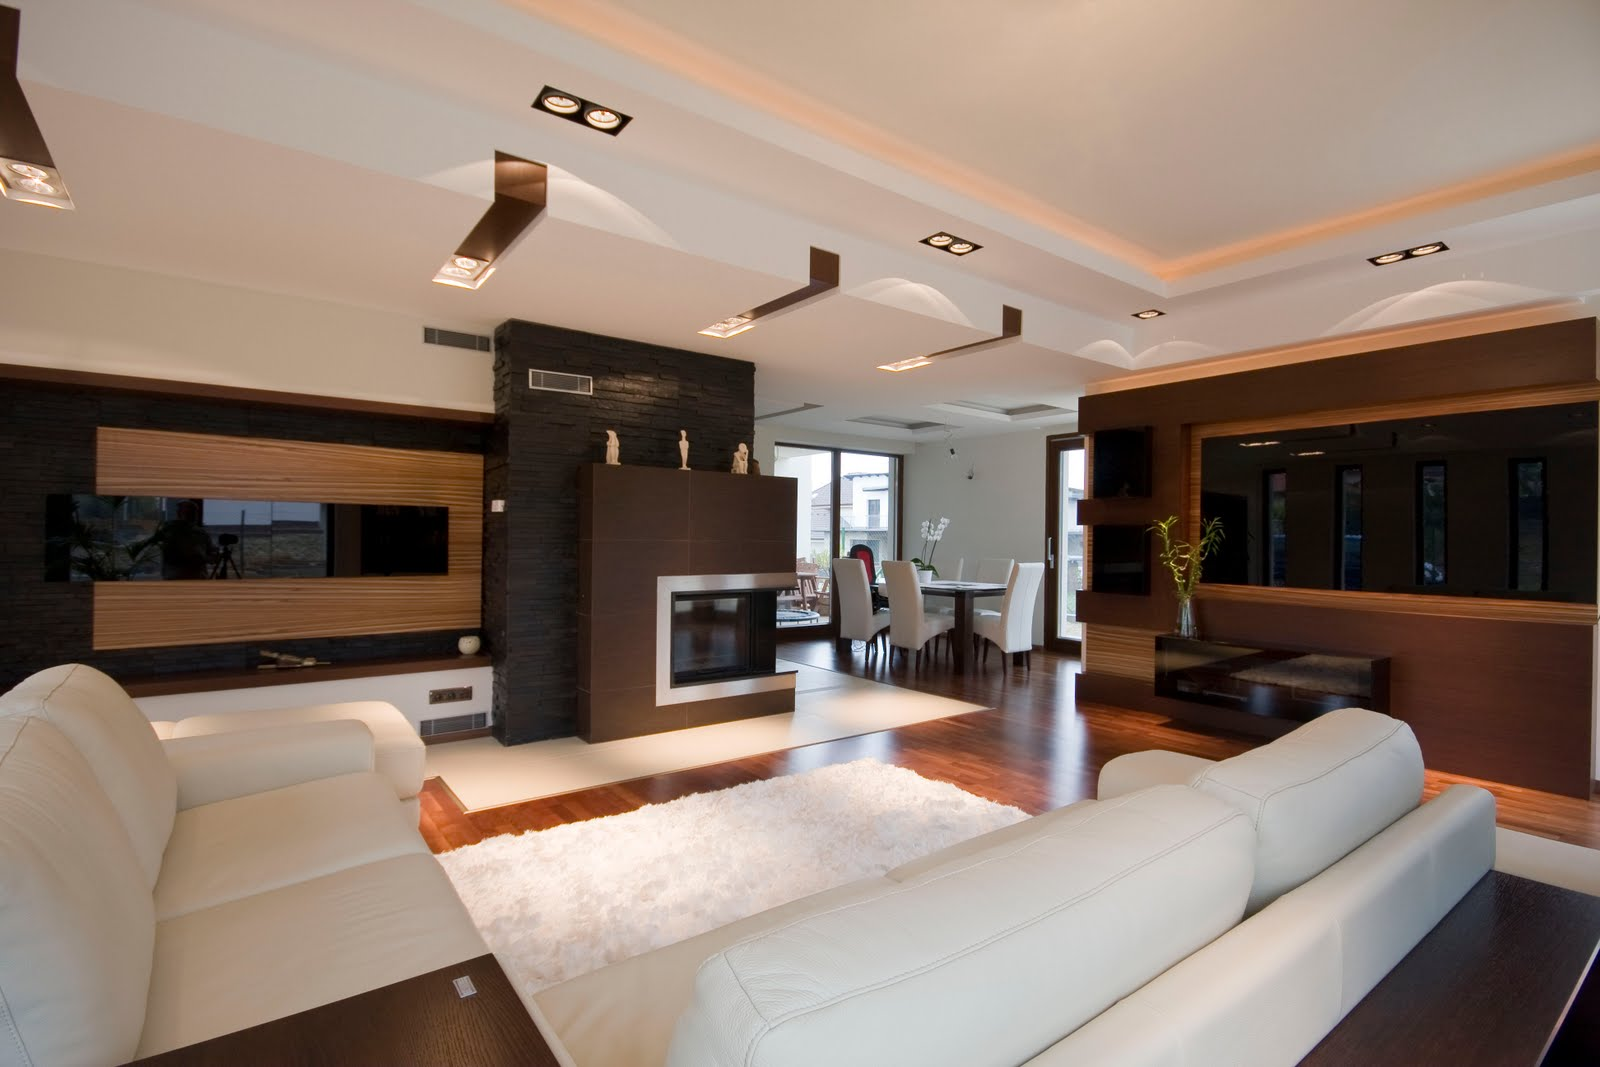 Contemporary-modern-living-room-home-interior-design-idea-with-luxury-comfortable-sofa-design-and-with-elegant-white-carpet-design.